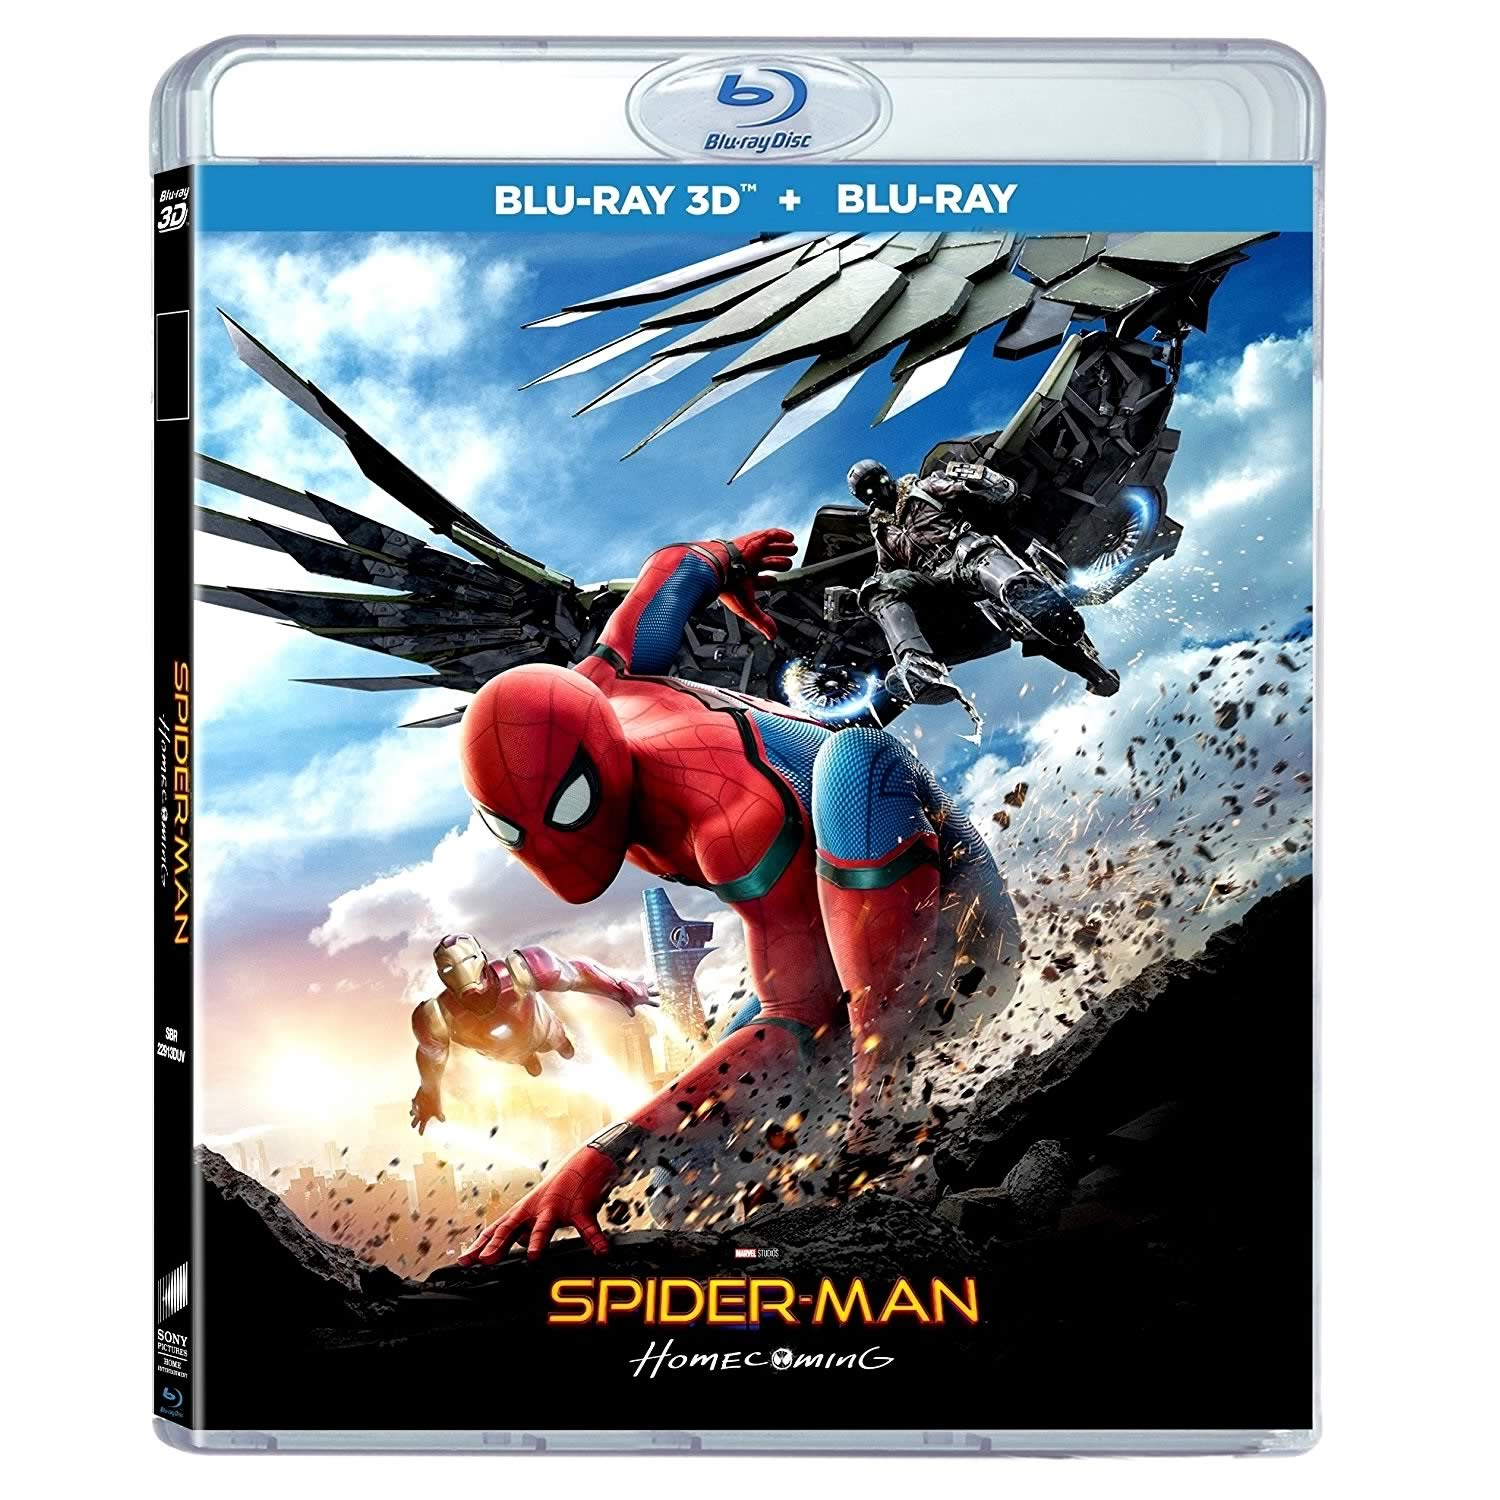 SPIDER-MAN: HOMECOMING 3D - SPIDER-MAN: H ΕΠΙΣΤΡΟΦΗ ΣΤΟΝ ΤΟΠΟ TOY 3D (BLU-RAY 3D/2D)